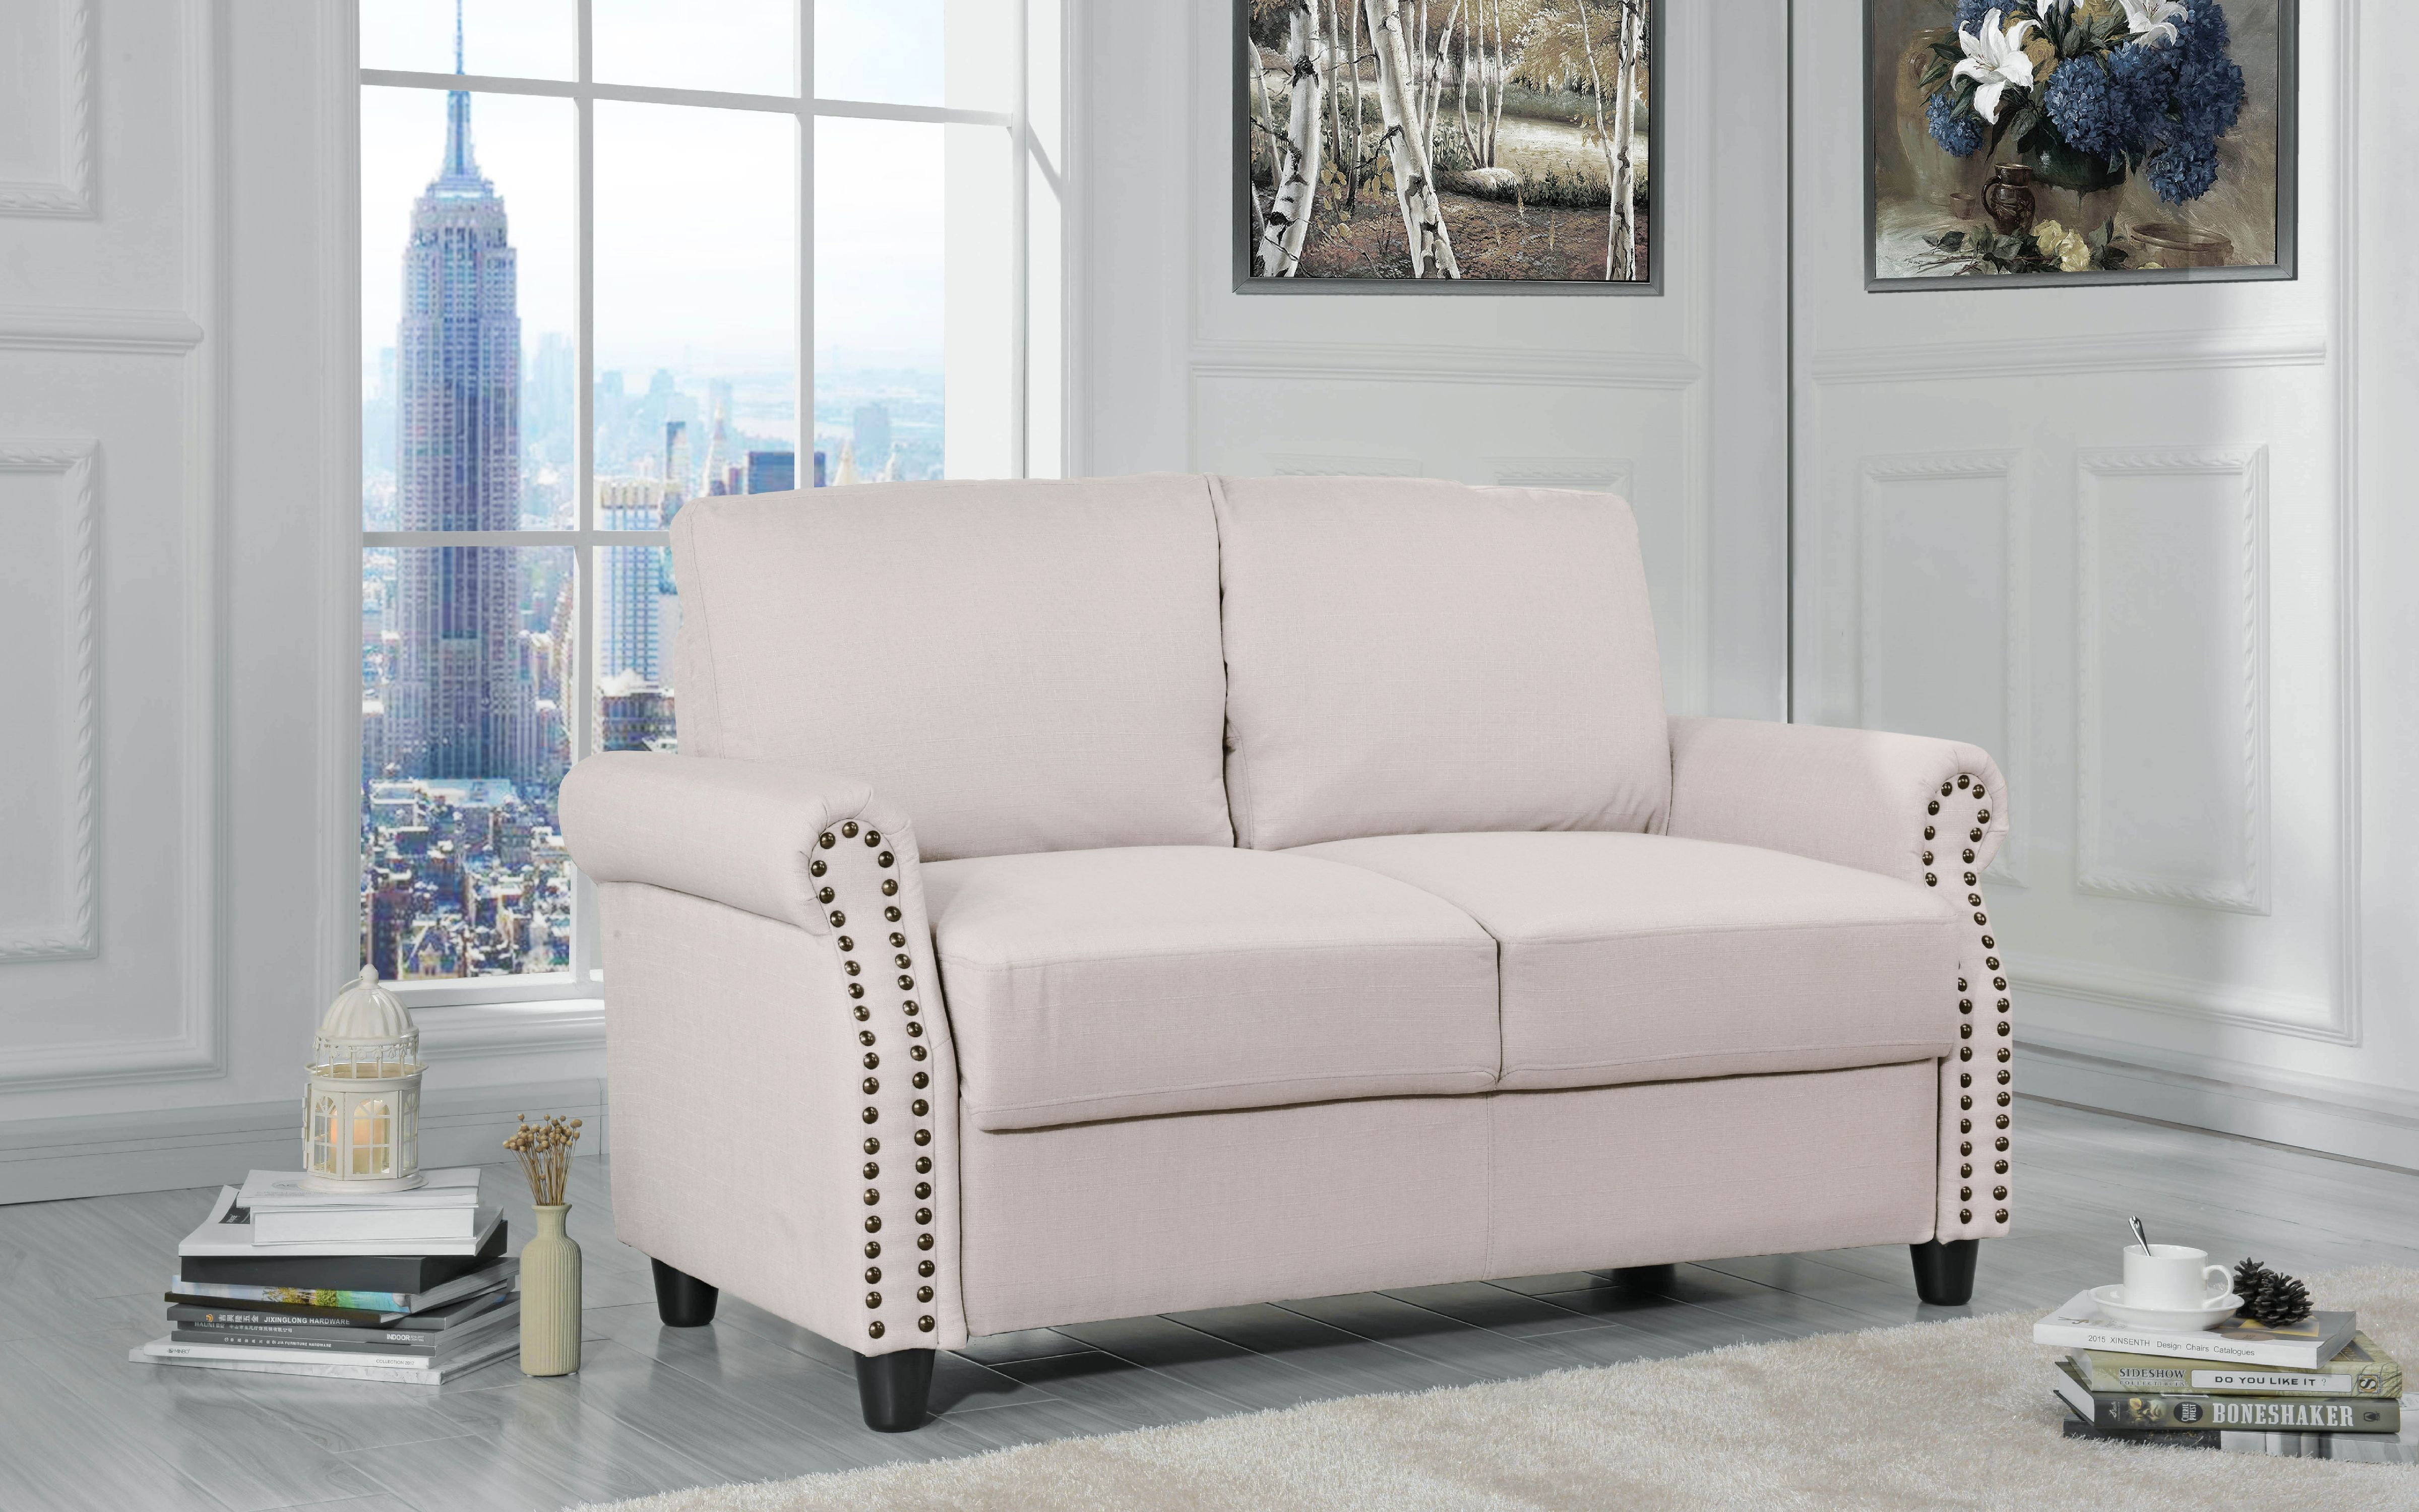 Classic Linen Loveseat with Nailhead Trim and Storage Space, Beige by Sofamania